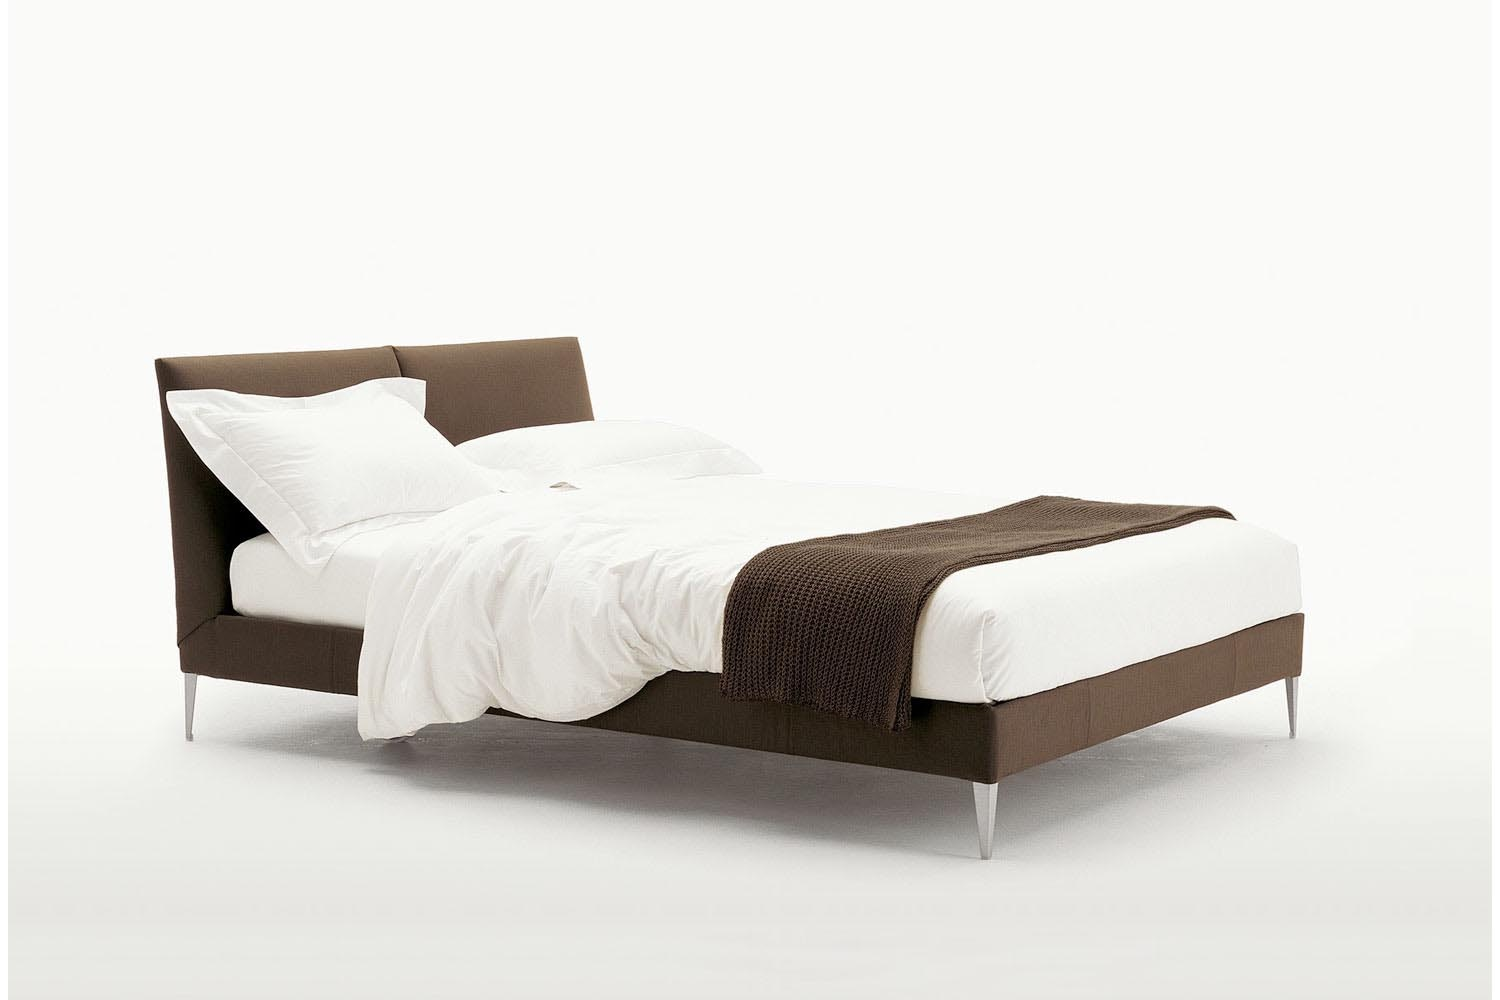 Selene Bed by Antonio Citterio for Maxalto